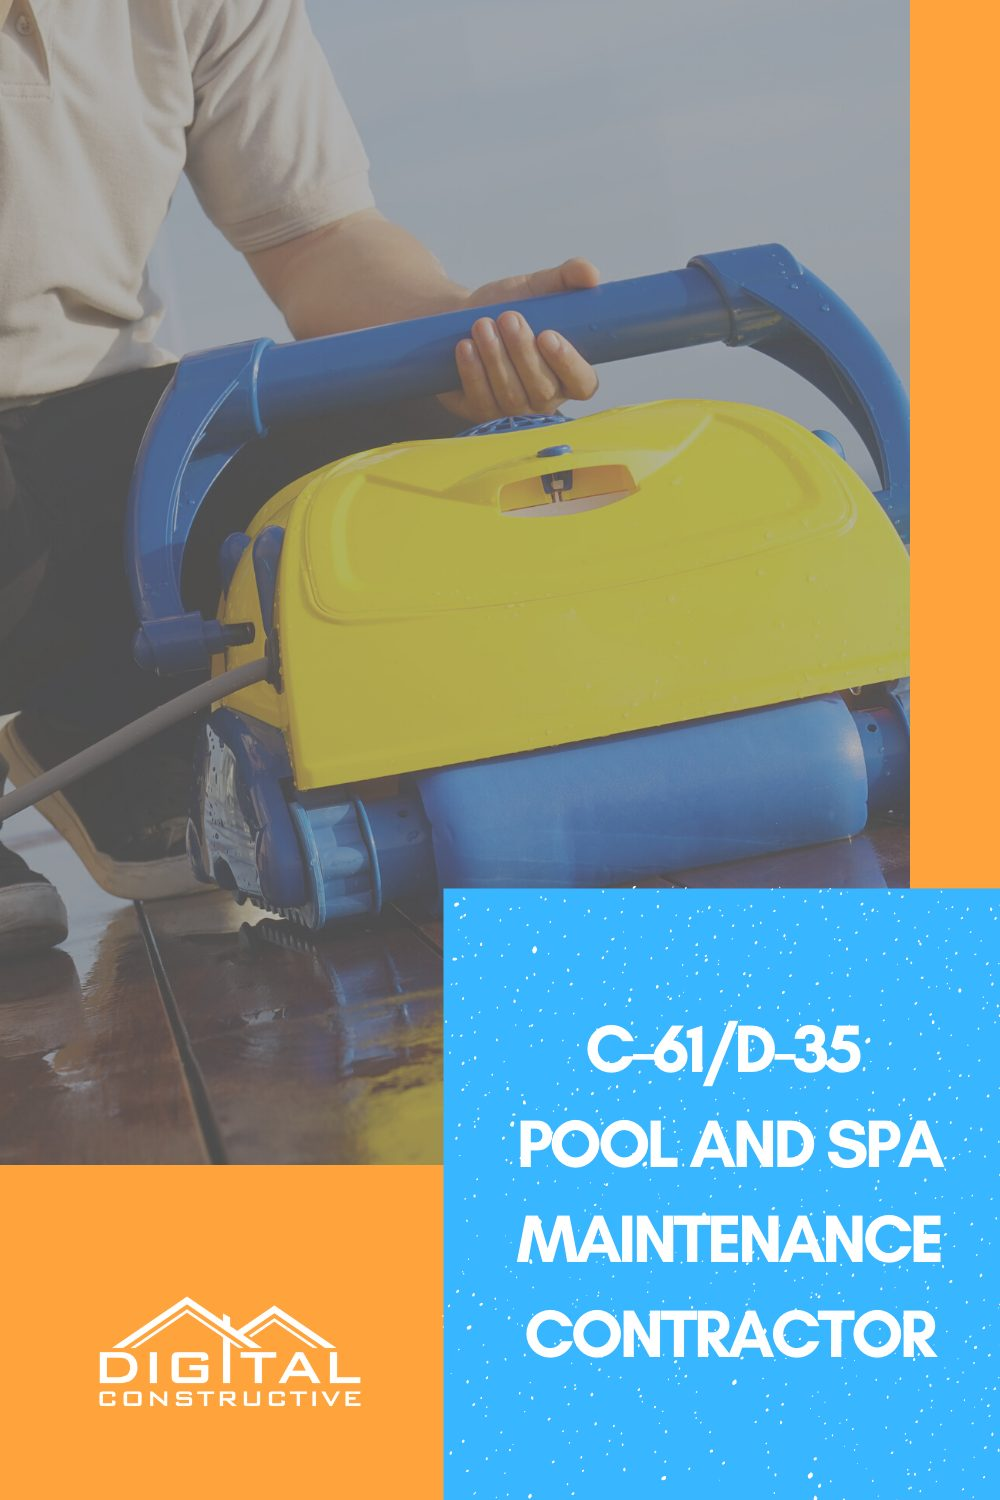 what can you do with a D-35 license for pool and spa maintenance in California